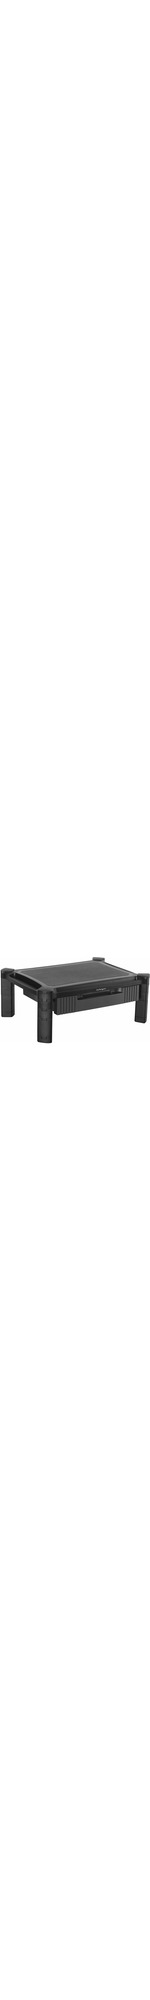 StarTech.com Adjustable Monitor Riser -  Monitors up to 32And#34;- Adjustable Height